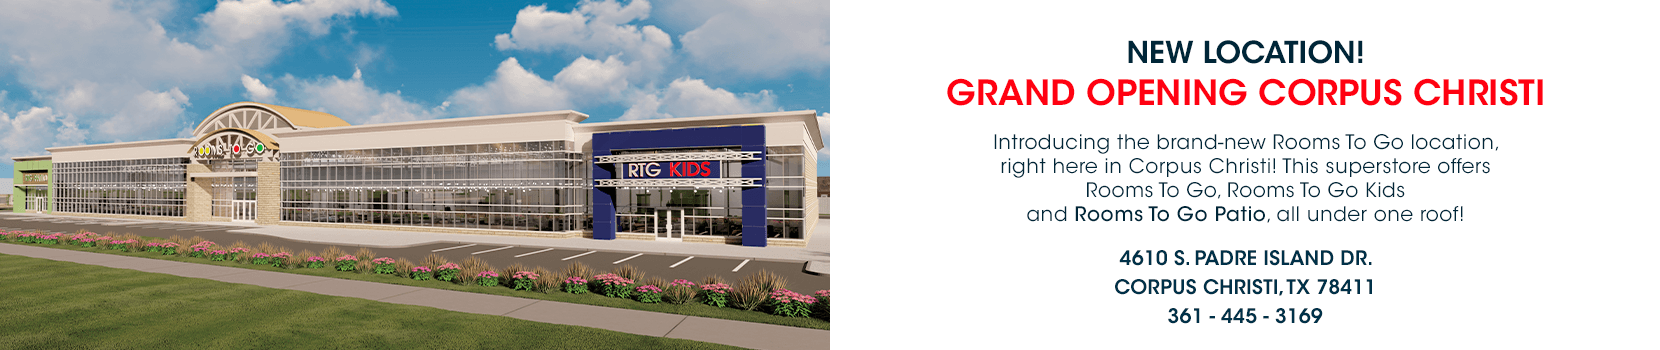 new location! introducing the brand new rooms to go location, right here in corpus christi. this superstore offers rooms to go, rooms to go kids, and rooms to go patio all under one roof. 4610 s padre island dr. corpus christ tx 78411. 361-445-3169